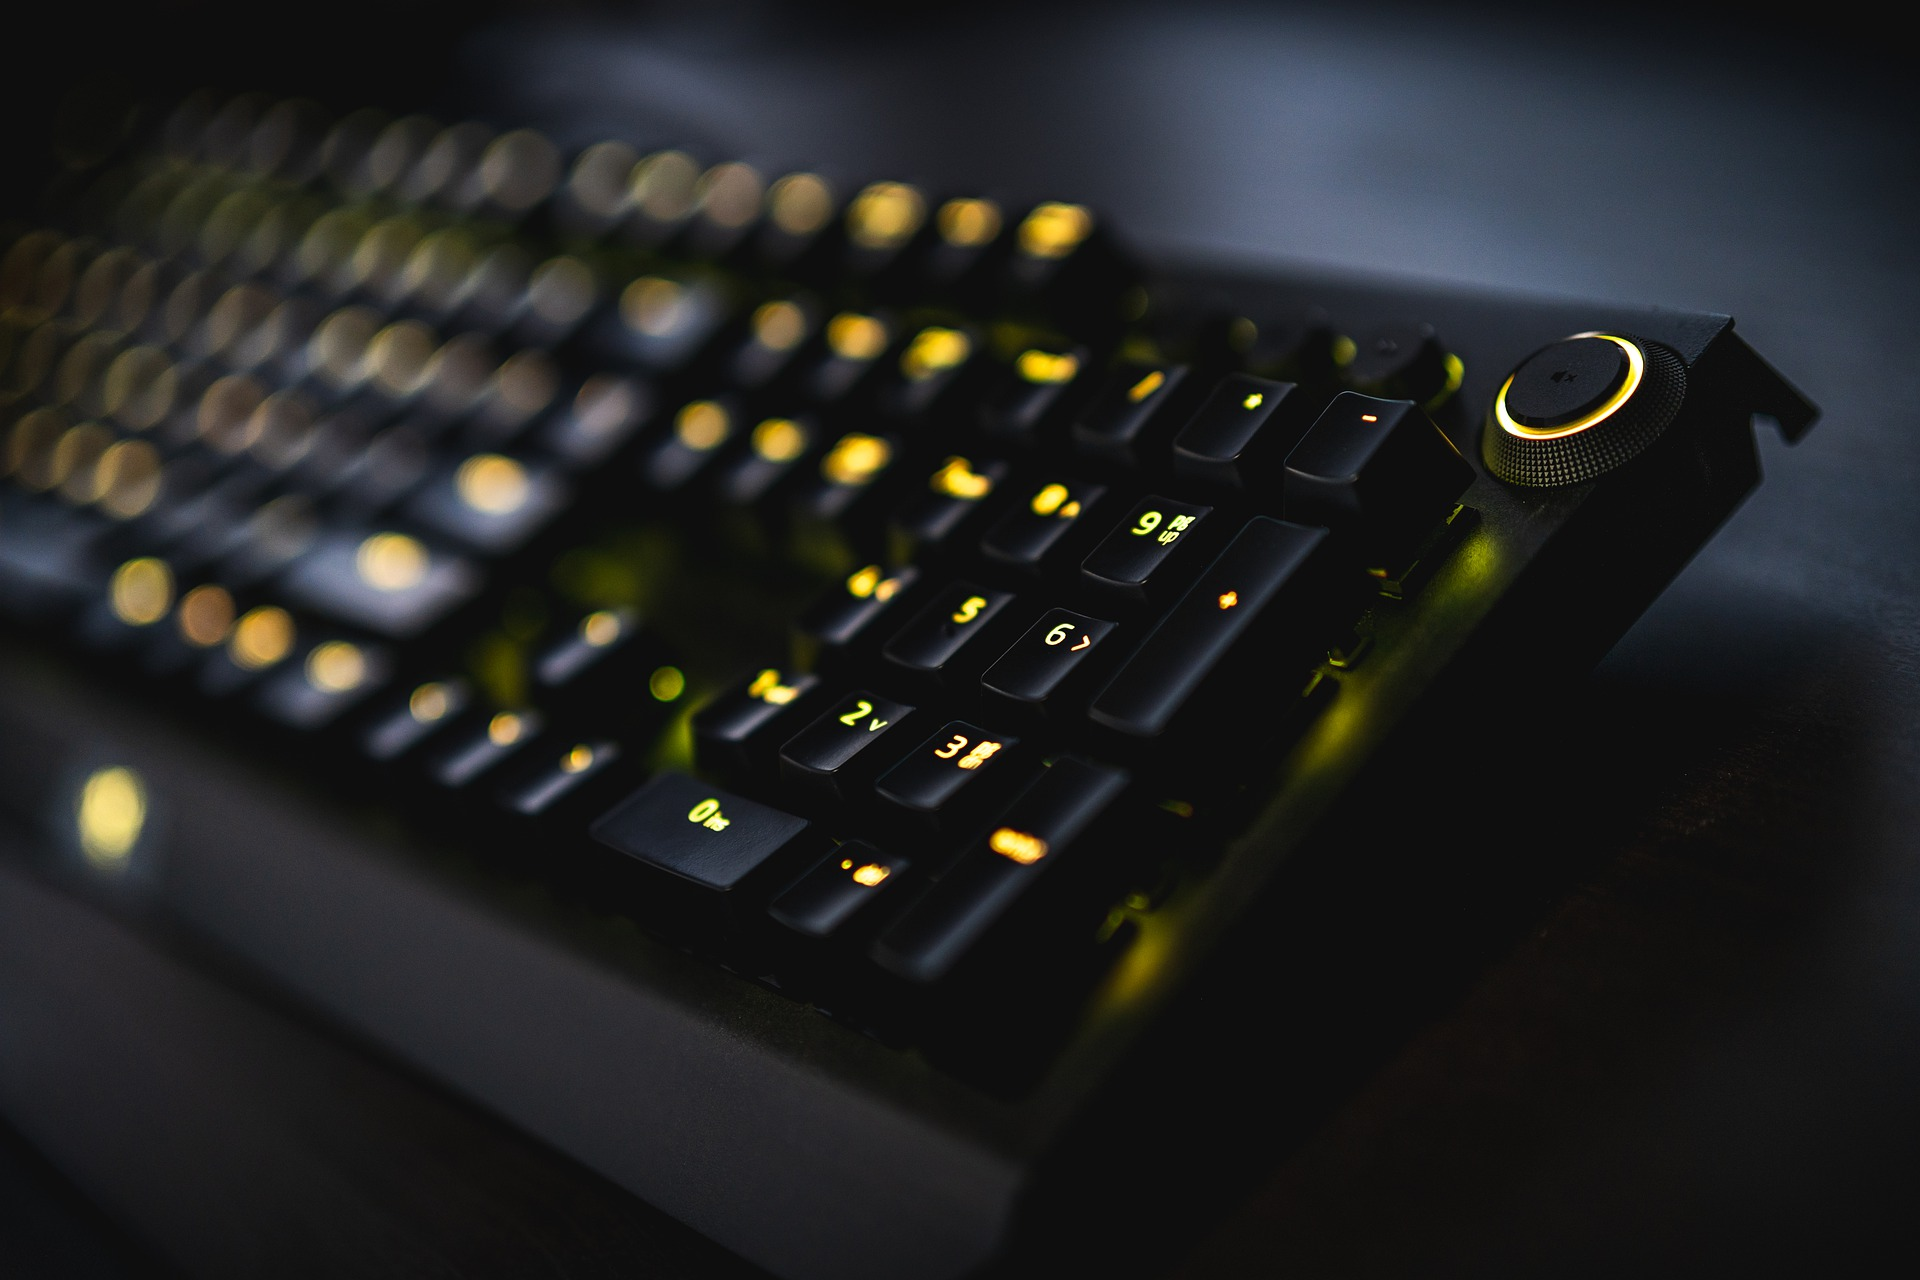 MIT enhances online learning using gaming techniques